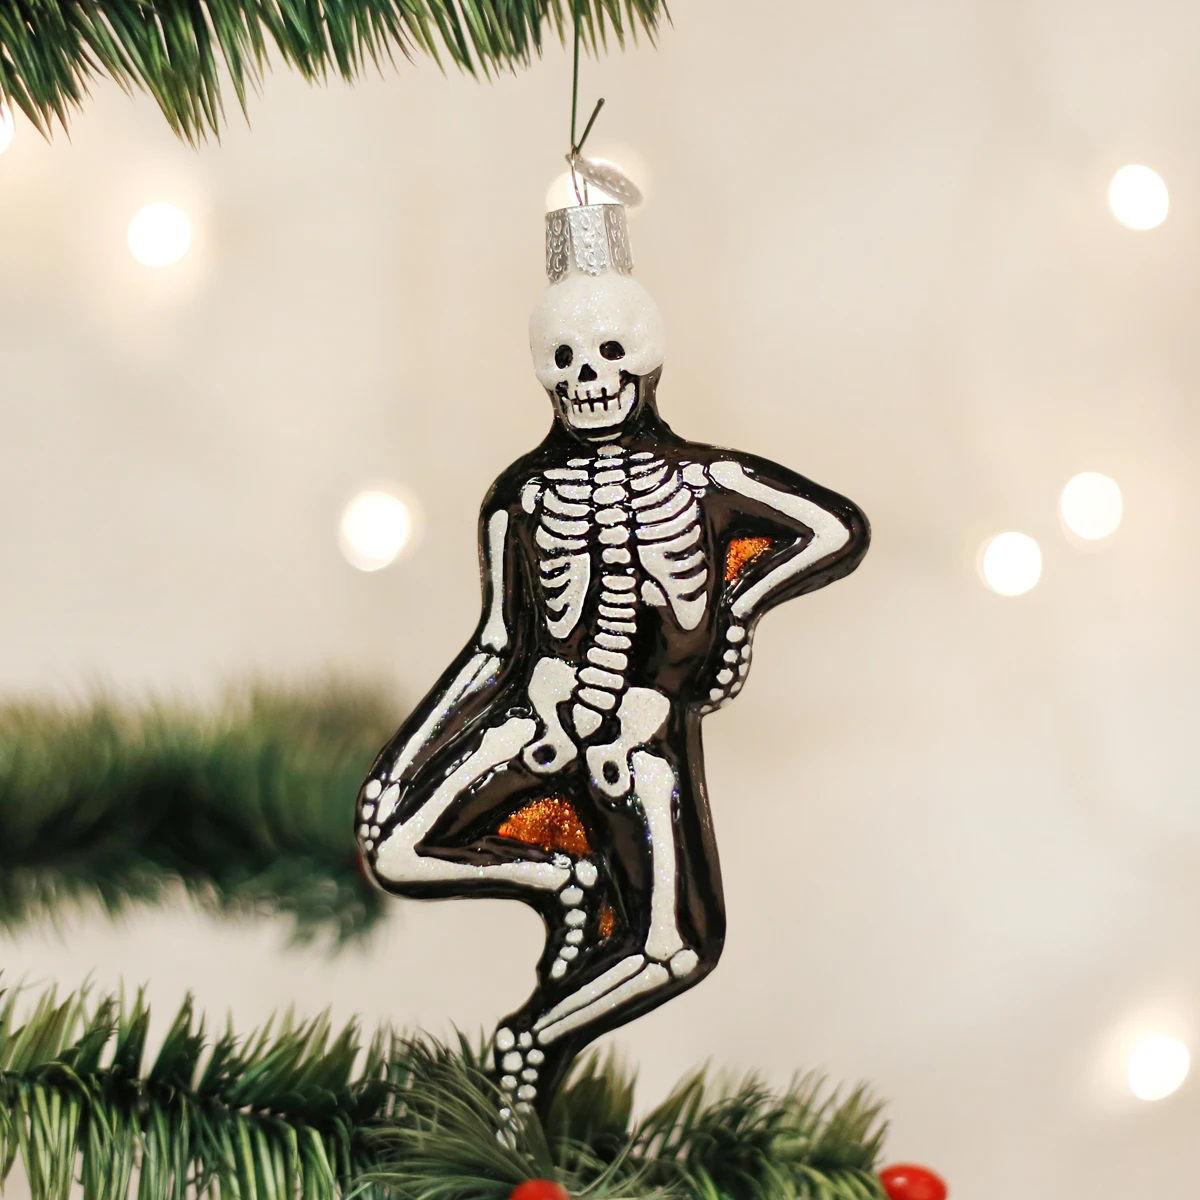 Mr. Bones Ornament by Old World Christmas